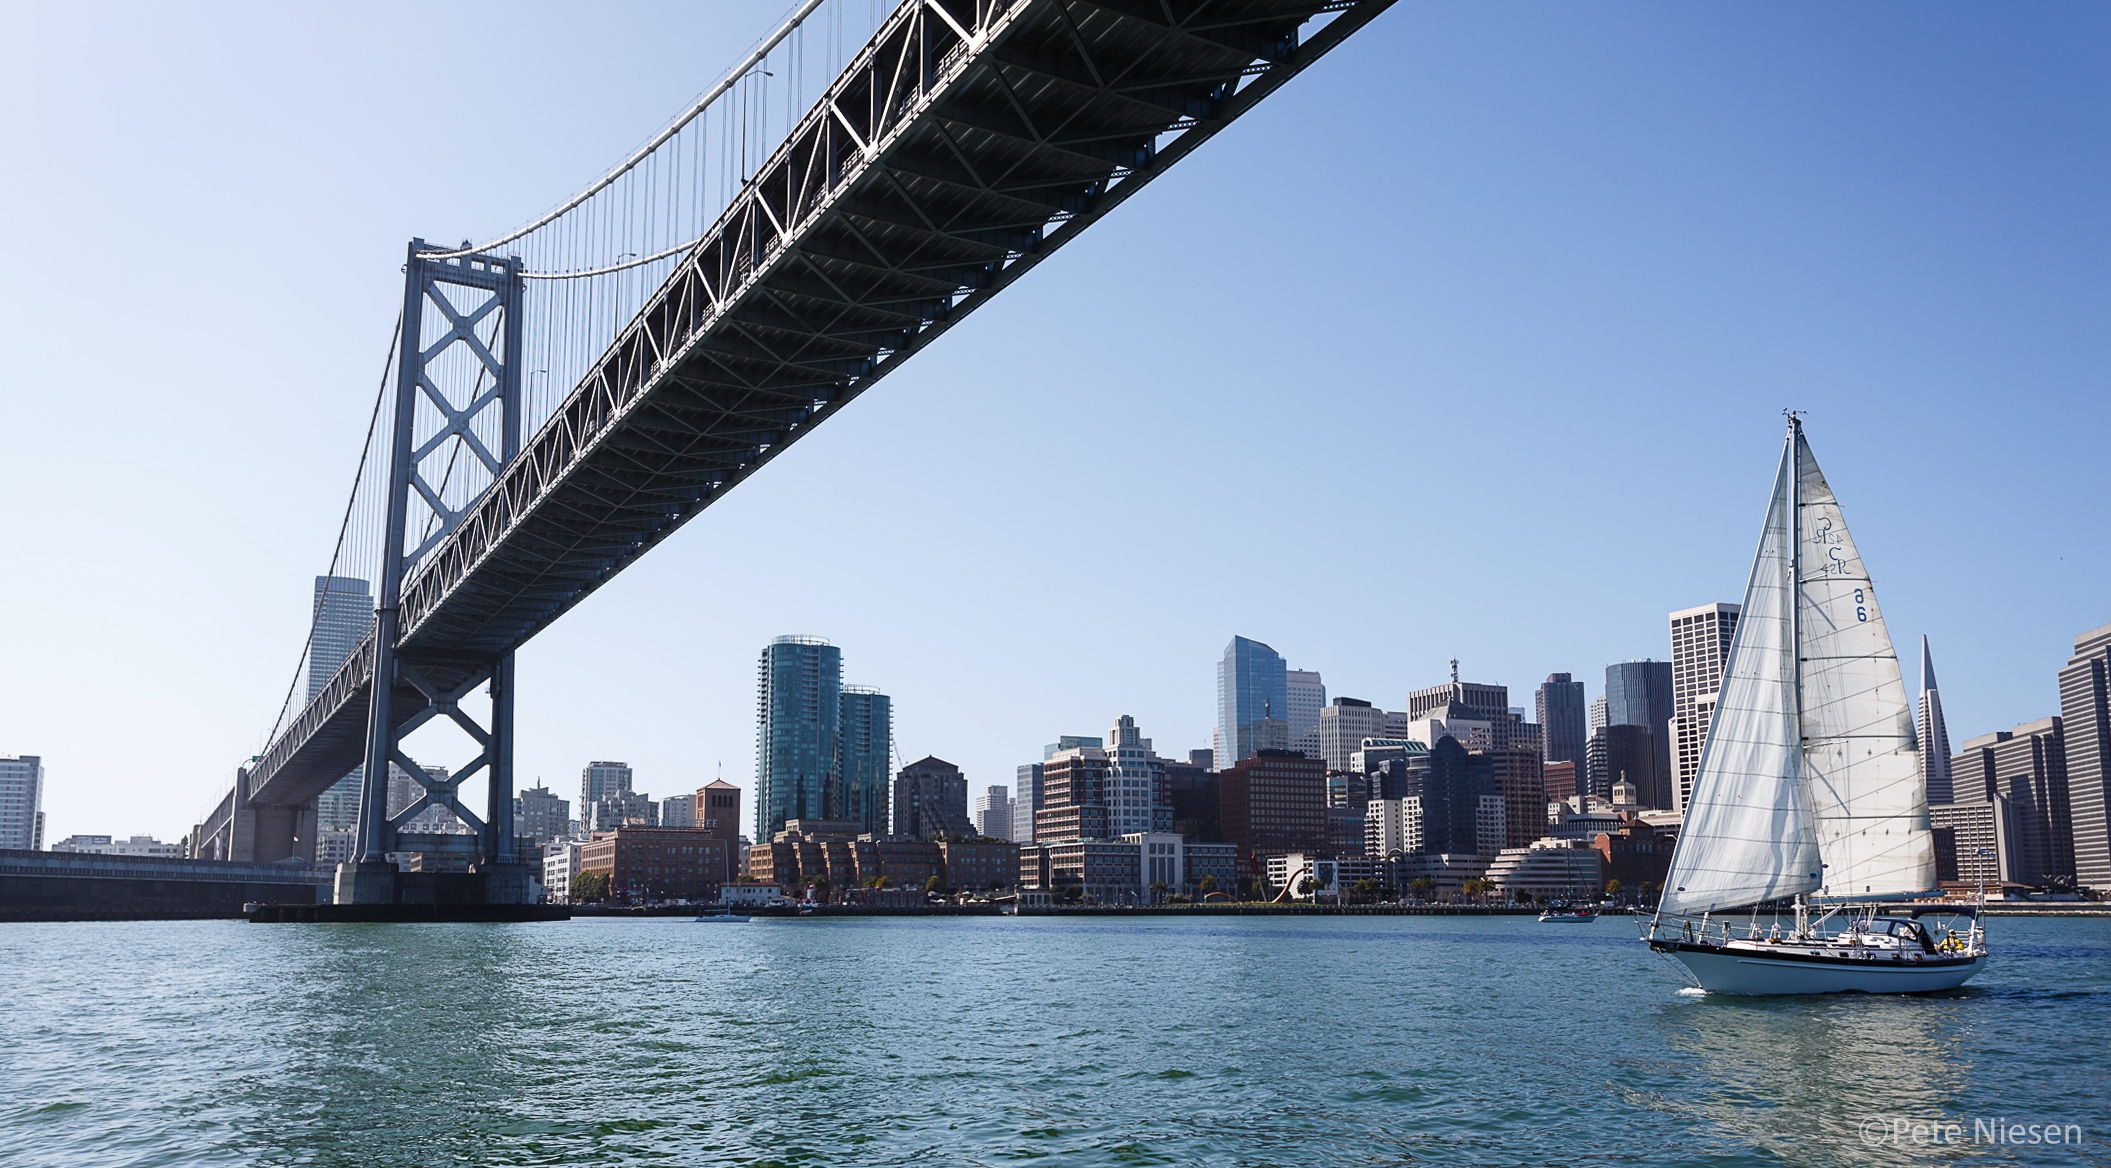 Sailing under the Bay Bridge while on a skippered charter with Modern Sailing School & Club